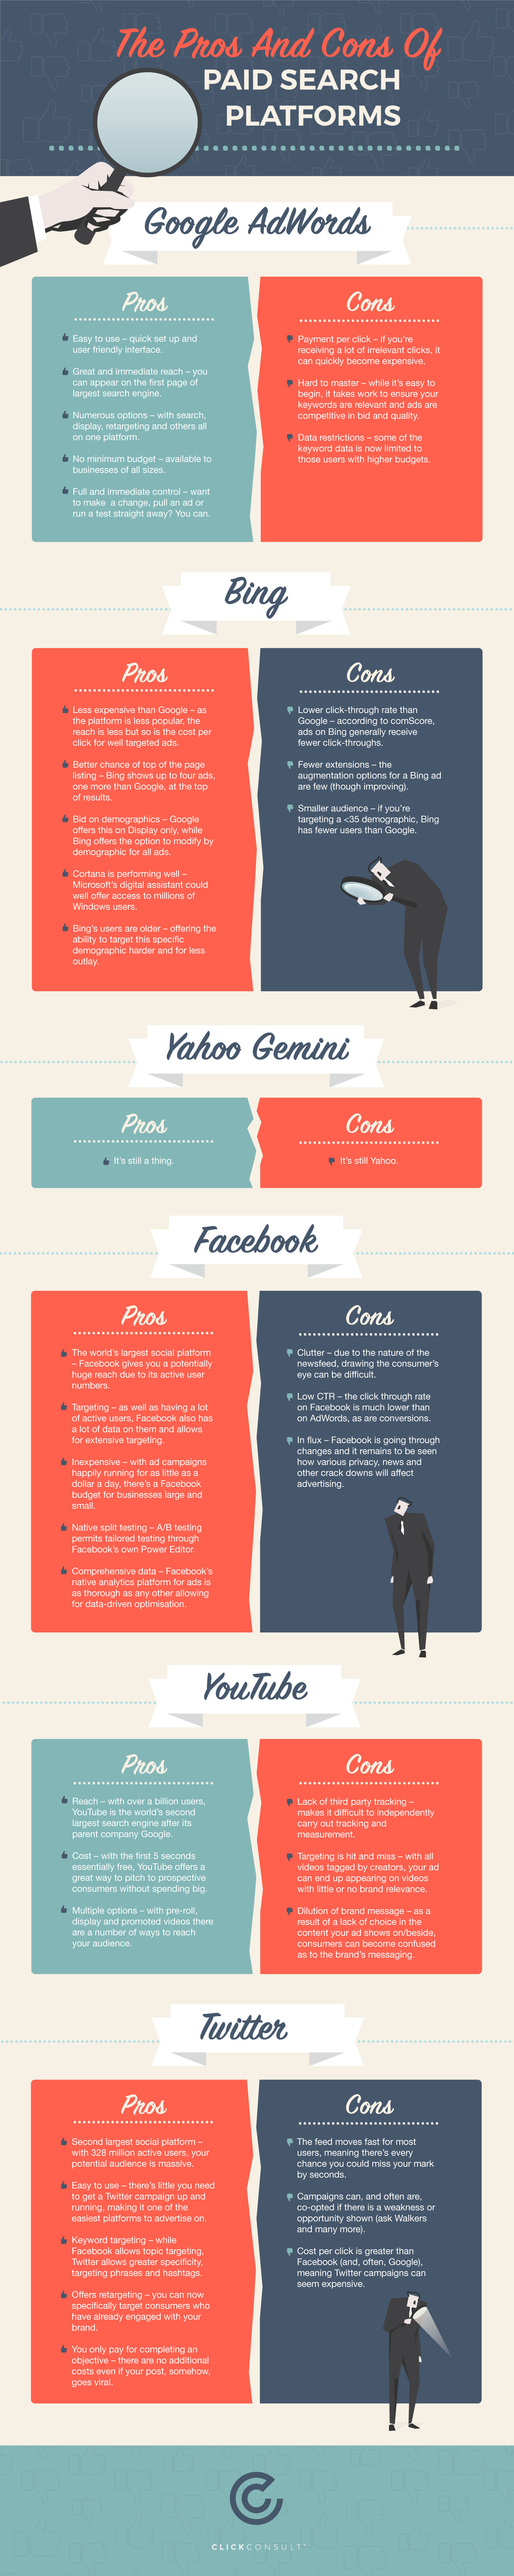 The Pros and Cons of Paid Search Platforms - #Infographic